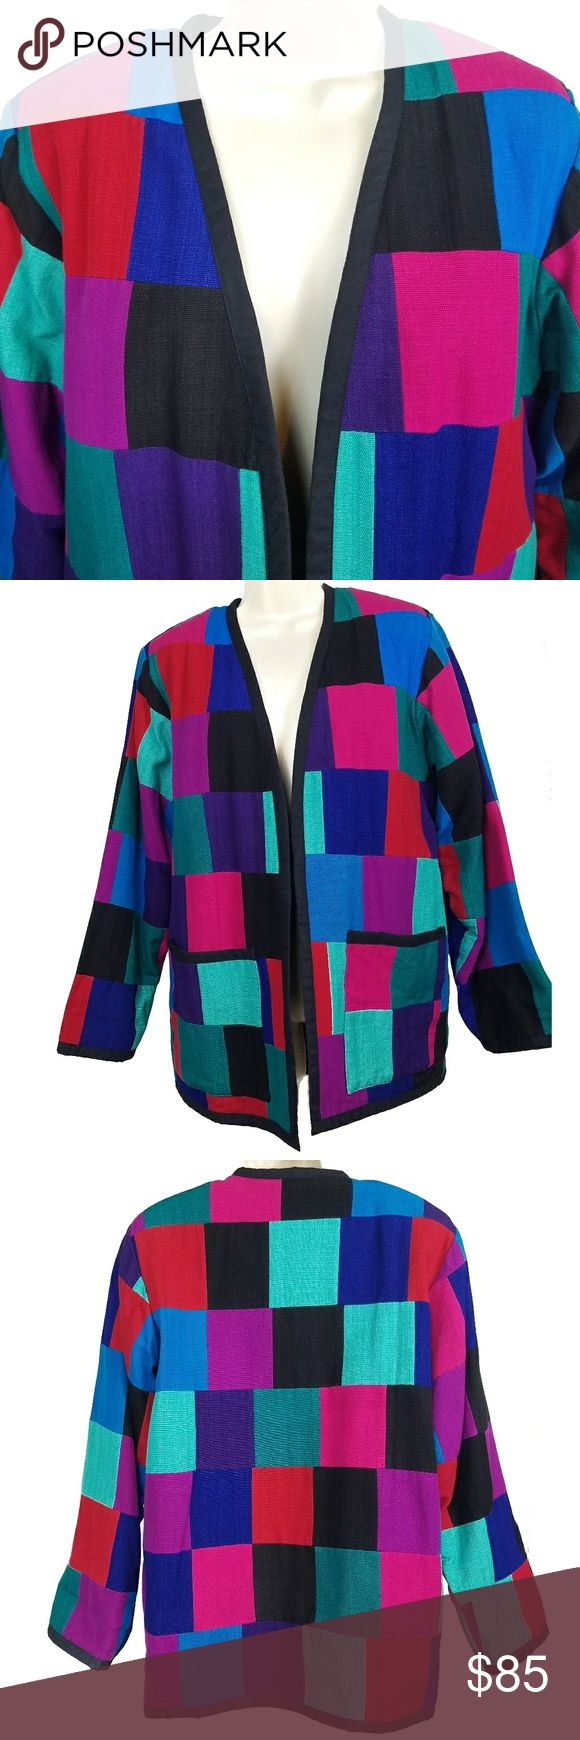 """Guatemalan Hand Woven Vintage Jacket This eye-catching, high quality jacket was hand woven in Guatemala of 100% cotton. It is very heavy and warm, with an outer shell of vibrantly colored patchwork and a black inner lining. It is from the late 1970s/early 1980s and a women's size small. There are several raised threads and a few spots in the inside shoulders from being hung in storage (see pictures #5 and #6 for examples). There are no rips, holes, or stains except as noted. The name """"Vick""""…"""